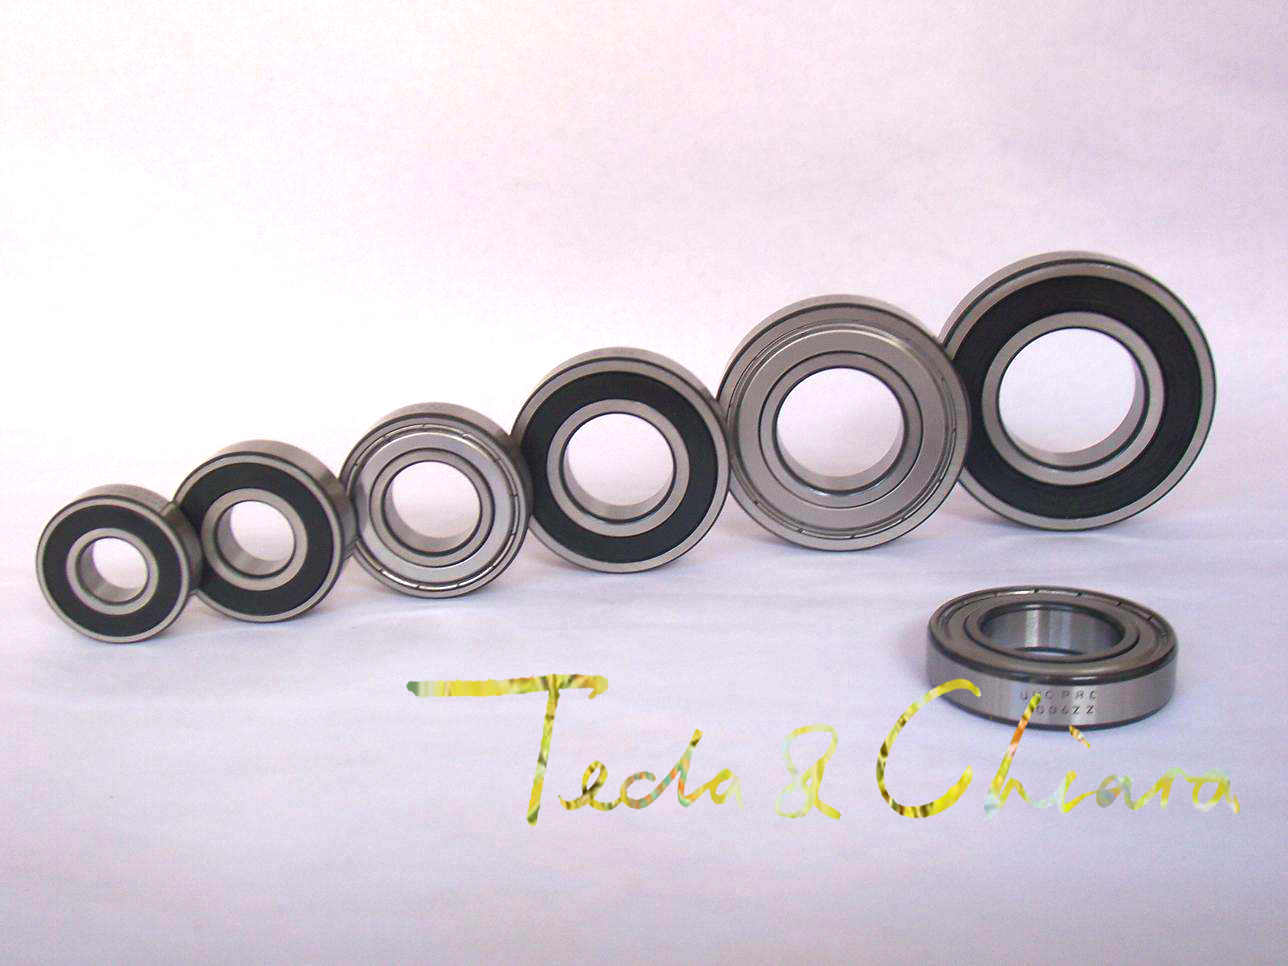 678RS 678ZZ MR128 MR128ZZ MR128RS MR128-2Z MR128-2RS 678 ZZ RS RZ 2RZ Deep Groove Ball Bearings 8 x 12 x 3.5mm High Quality 6704 6704zz 6704rs 6704 2z 6704z 6704 2rs zz rs rz 2rz deep groove ball bearings 20 x 27 x 4mm high quality